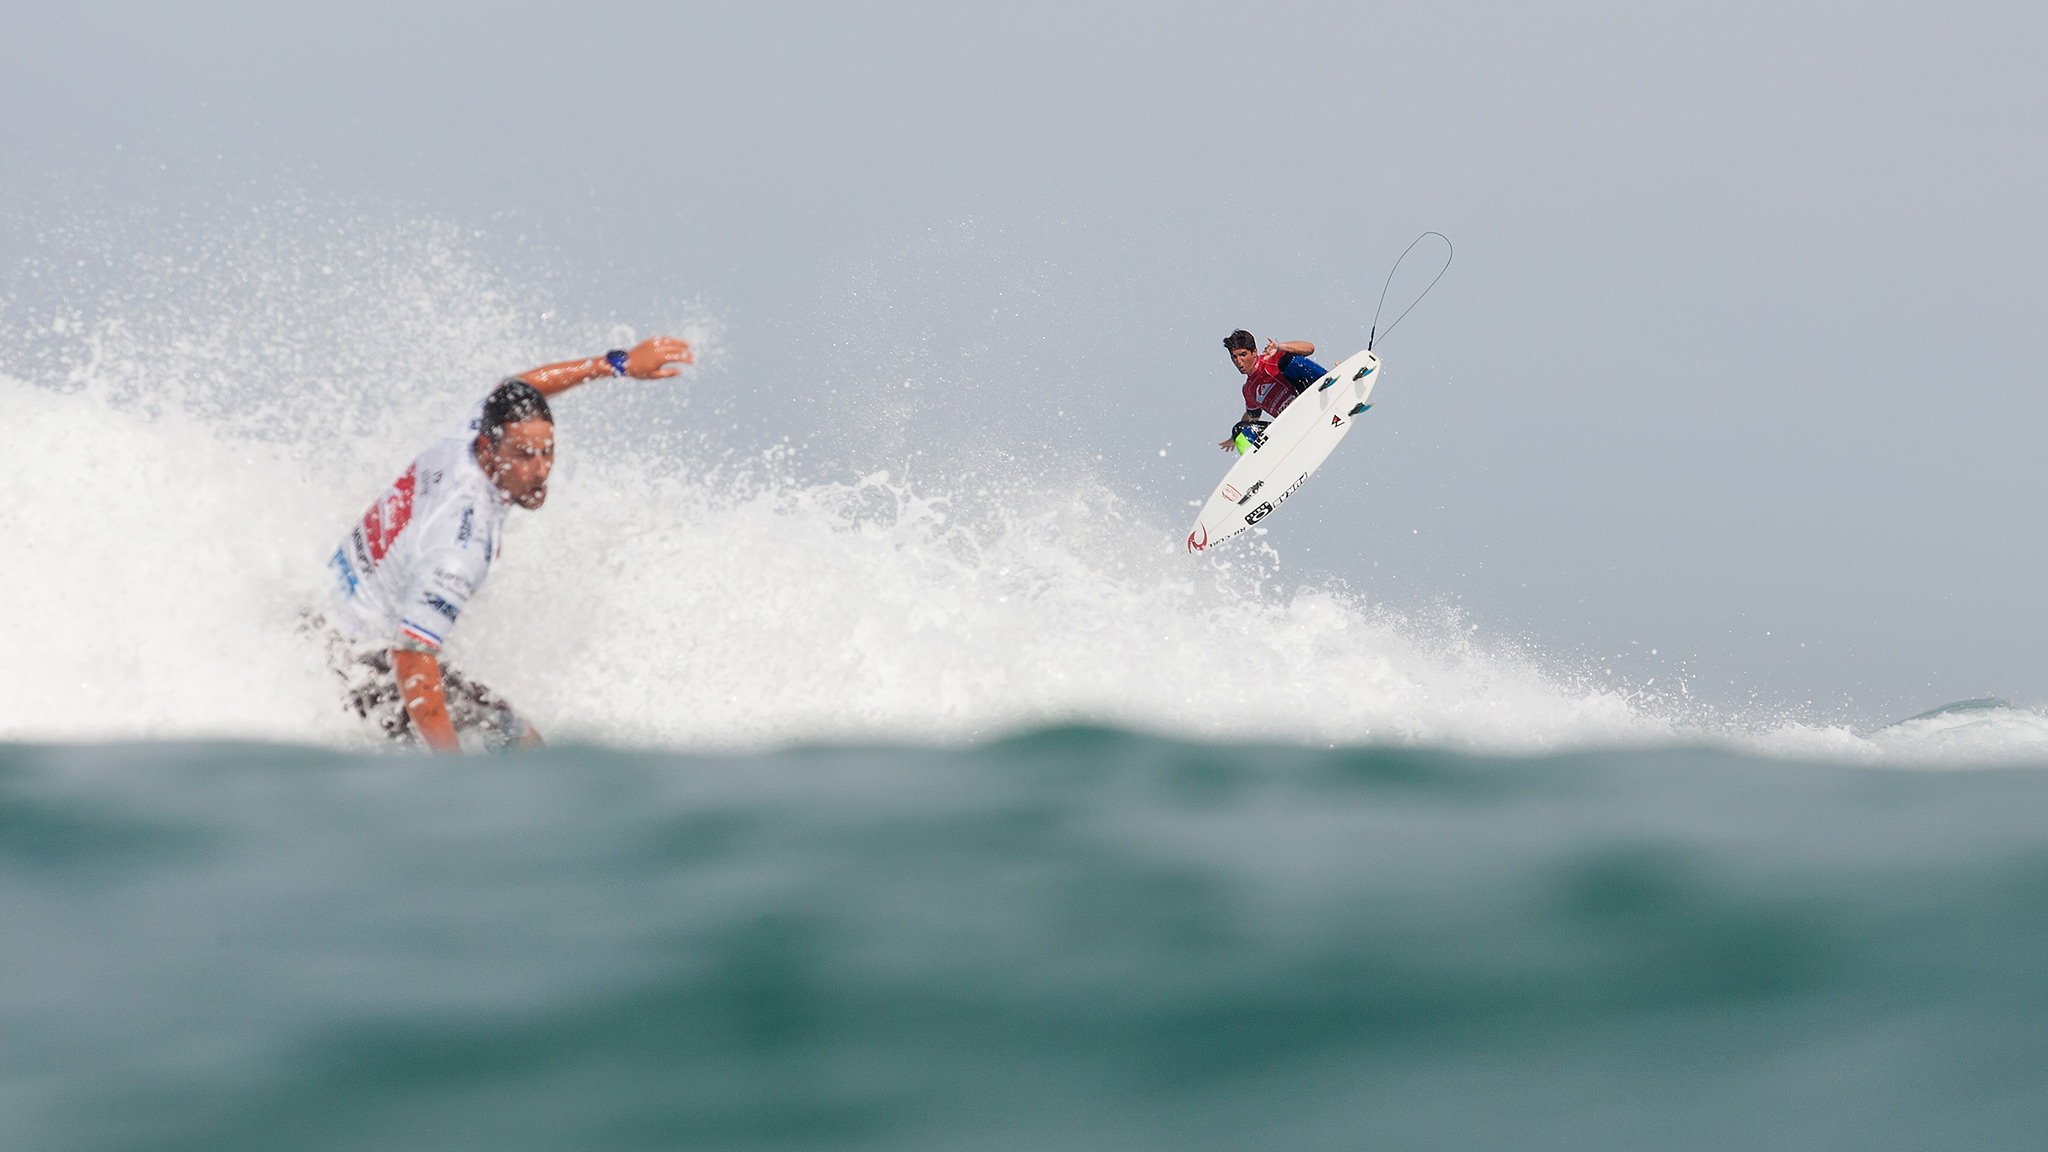 Earning the Quik Pro's first perfect 10-point ride, Gabriel Medina has emerged as the man to beat in France.